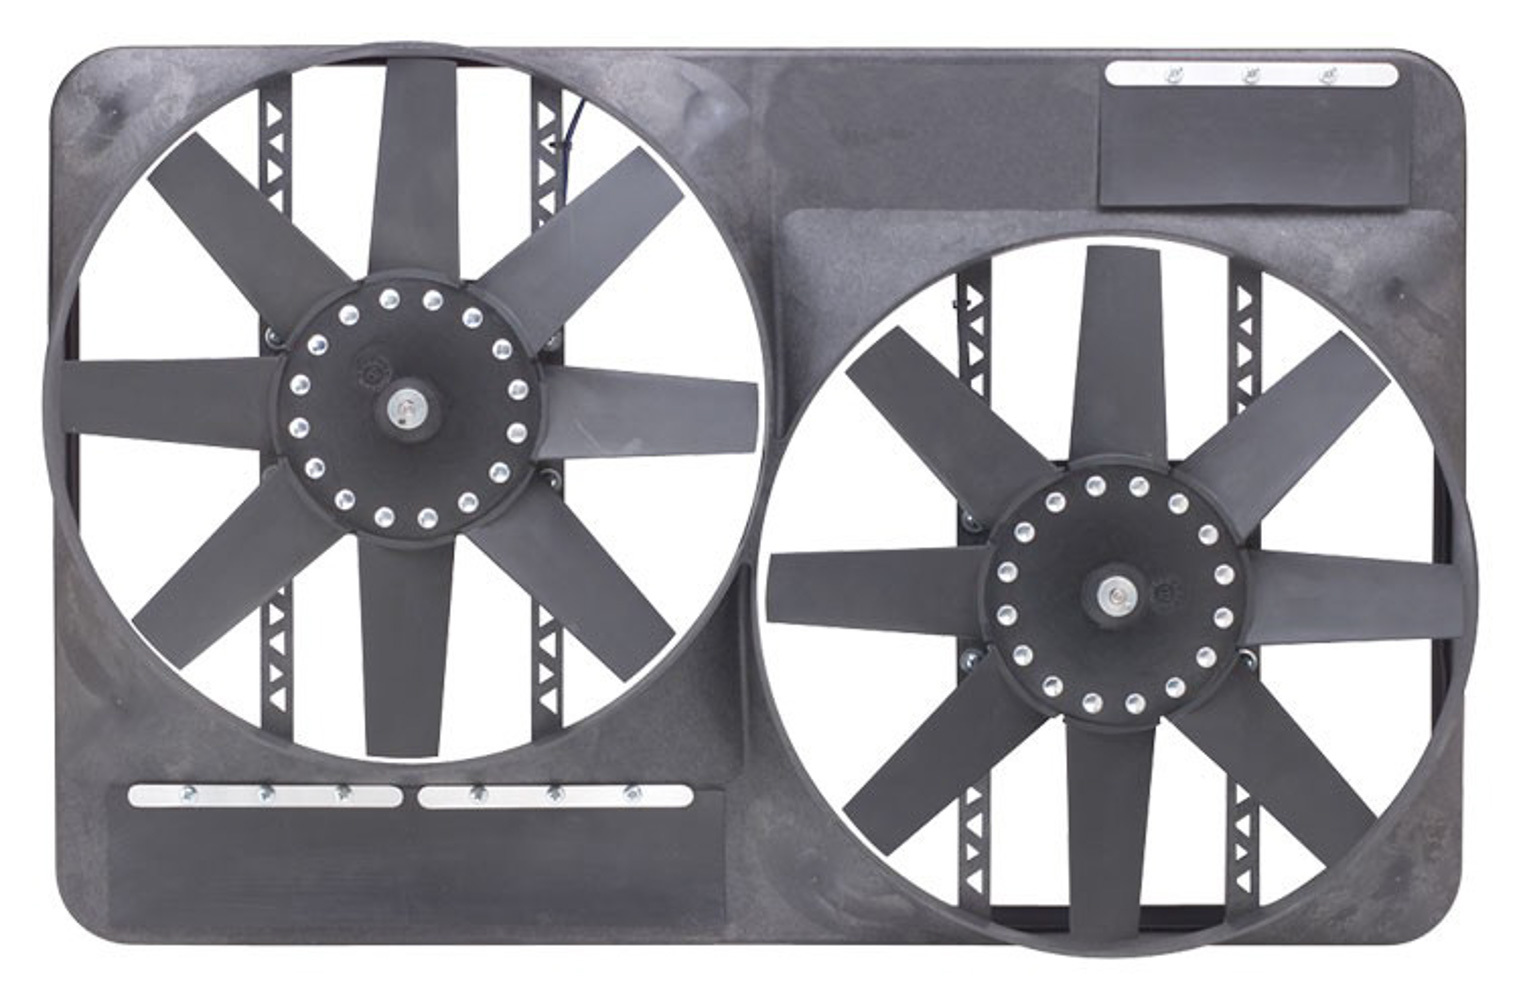 Flex-A-Lite 104242 Electric Cooling Fan, Dual 13.5 in Fan, Puller, 4600 CFM, 12V, Straight Blade, Controller, Plastic, 27-1/2 x 17-1/2 in, 4 in Thick, Plastic, Each